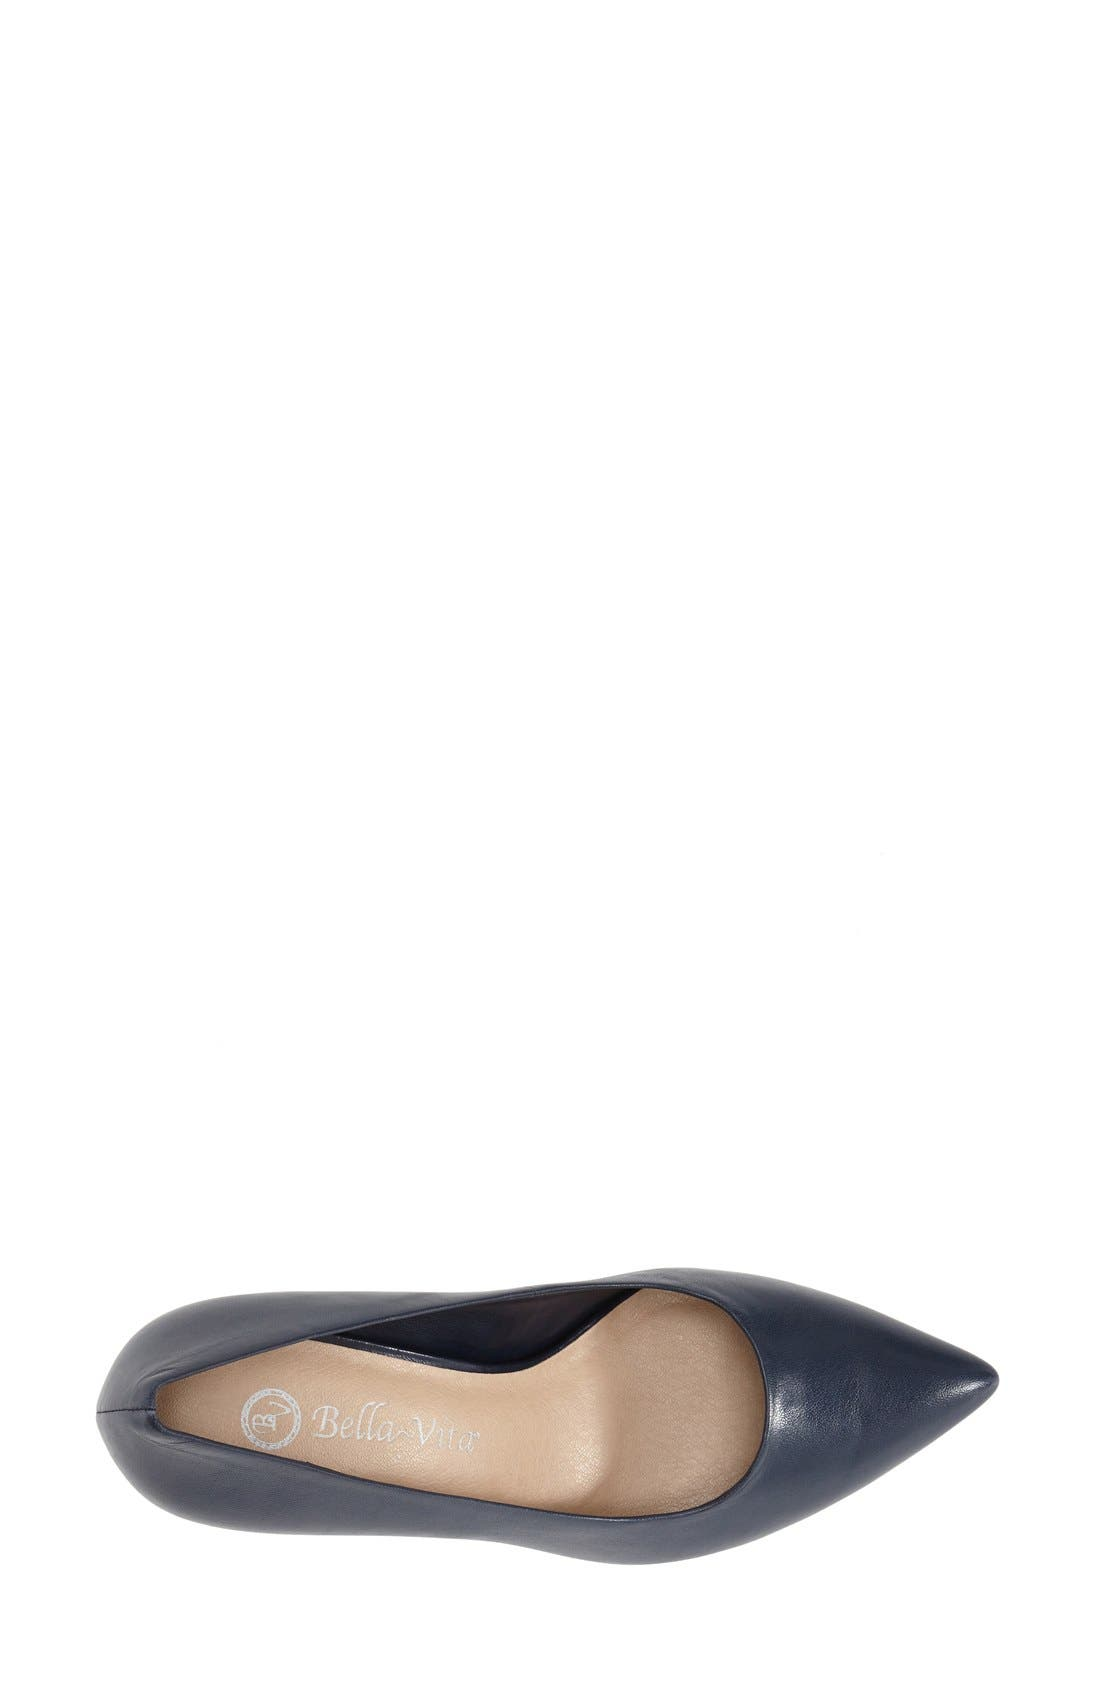 'Define' Pointy Toe Pump,                             Alternate thumbnail 3, color,                             NAVY LEATHER